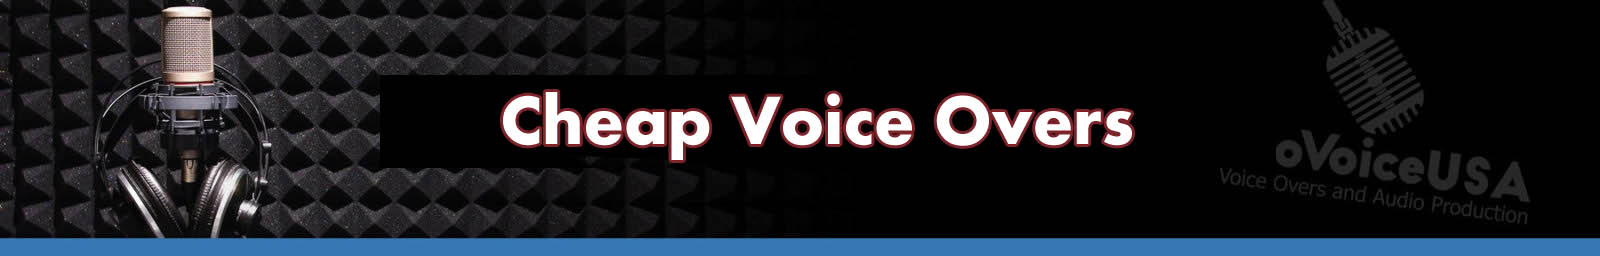 Cheap Voice Overs | American Voice Recording Service | ProVoice USA